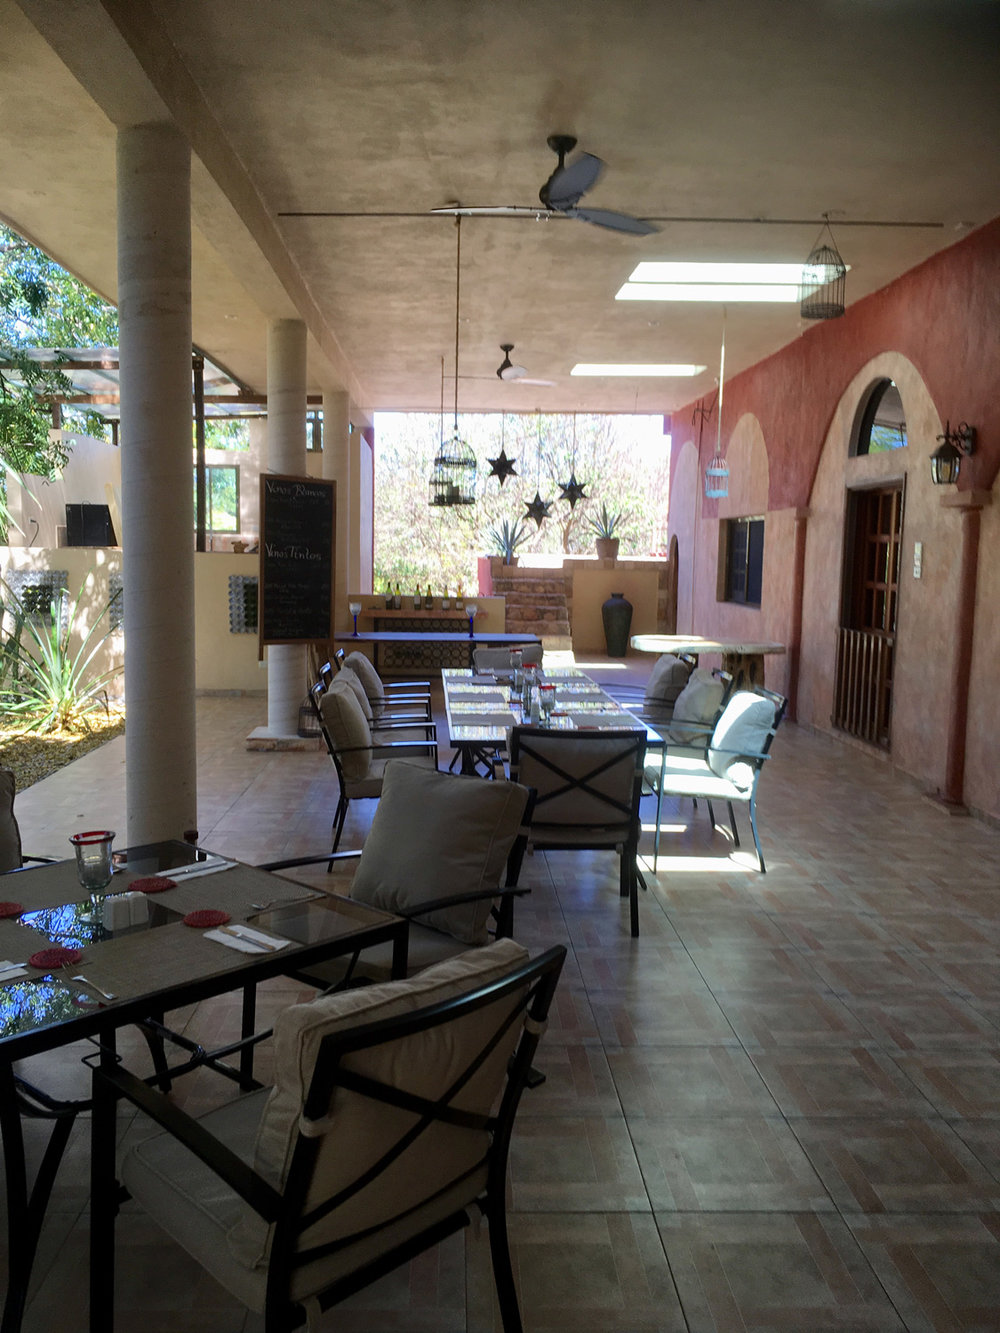 The veranda of Santo Domingo's main house.